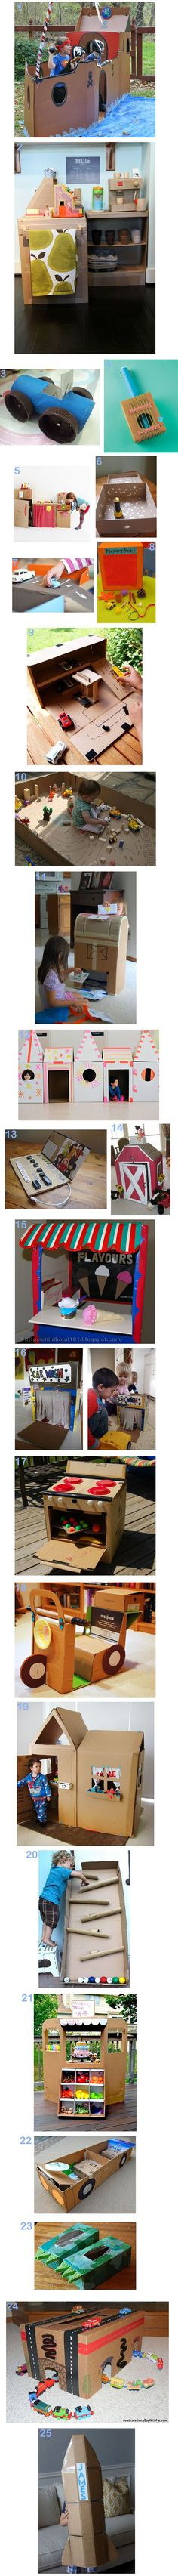 Cardboard Box Ideas - I love cardboard boxes - You can never have enough of them - these are some great ideas and pretty much free!*